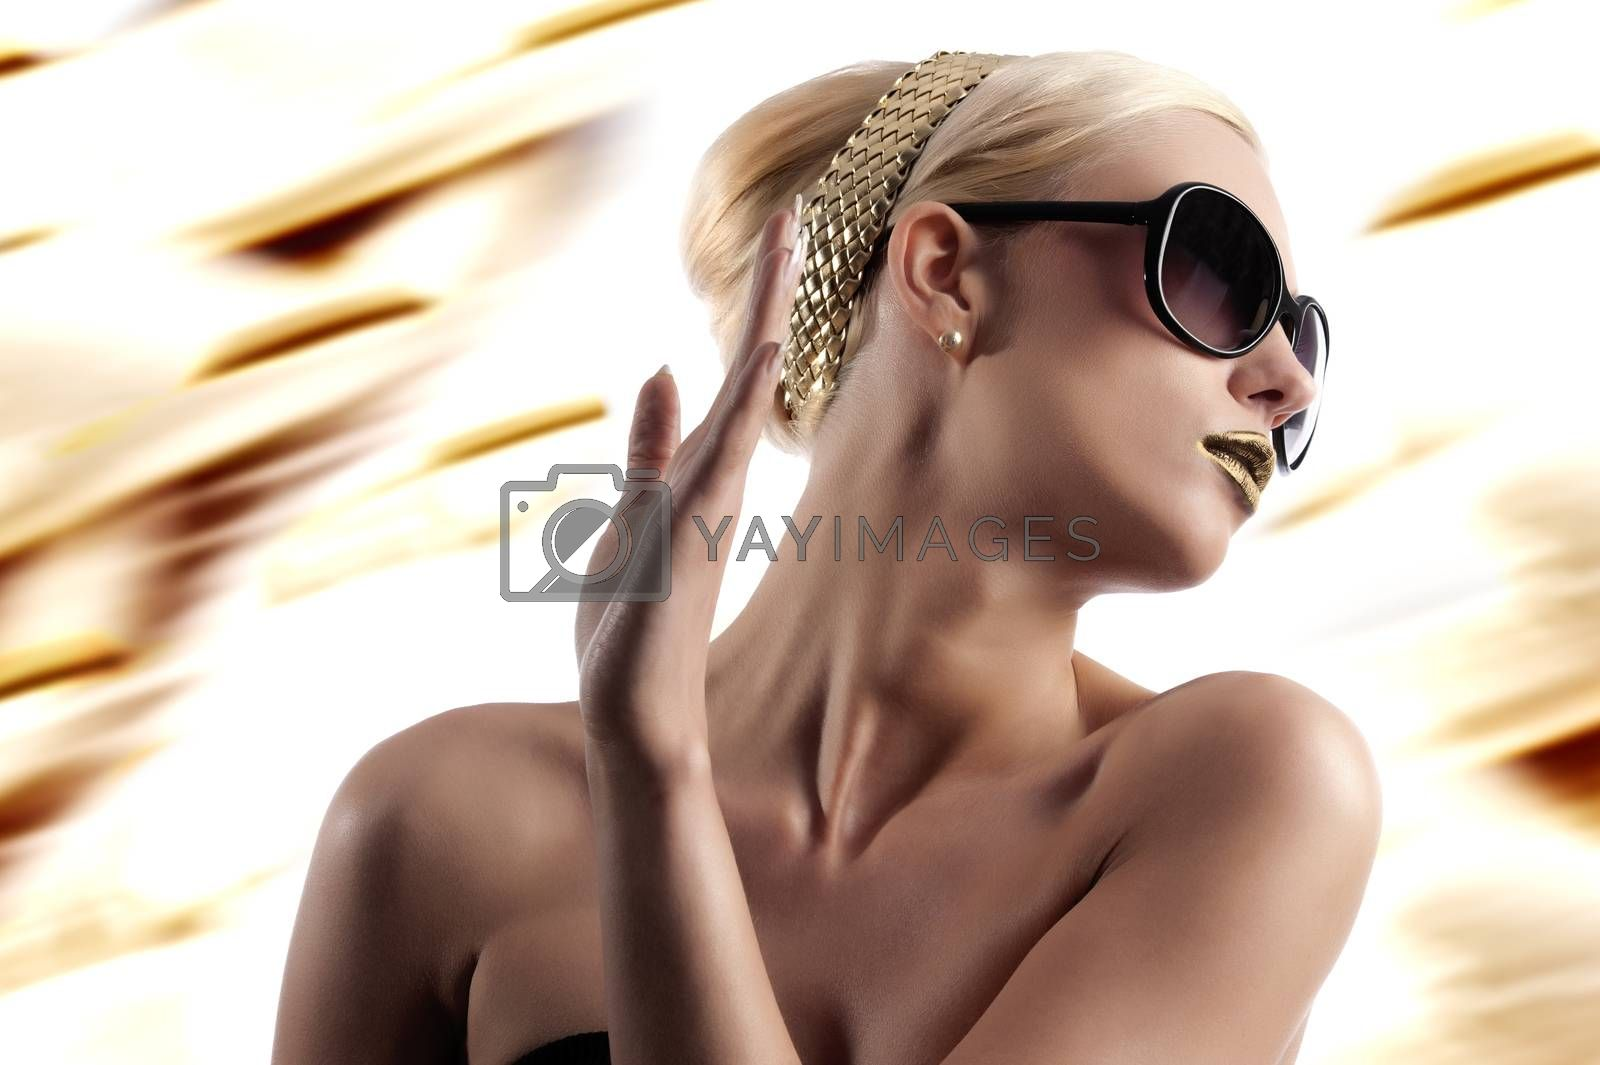 Royalty free image of fashion shot of blond woman with sunglasses by fotoCD